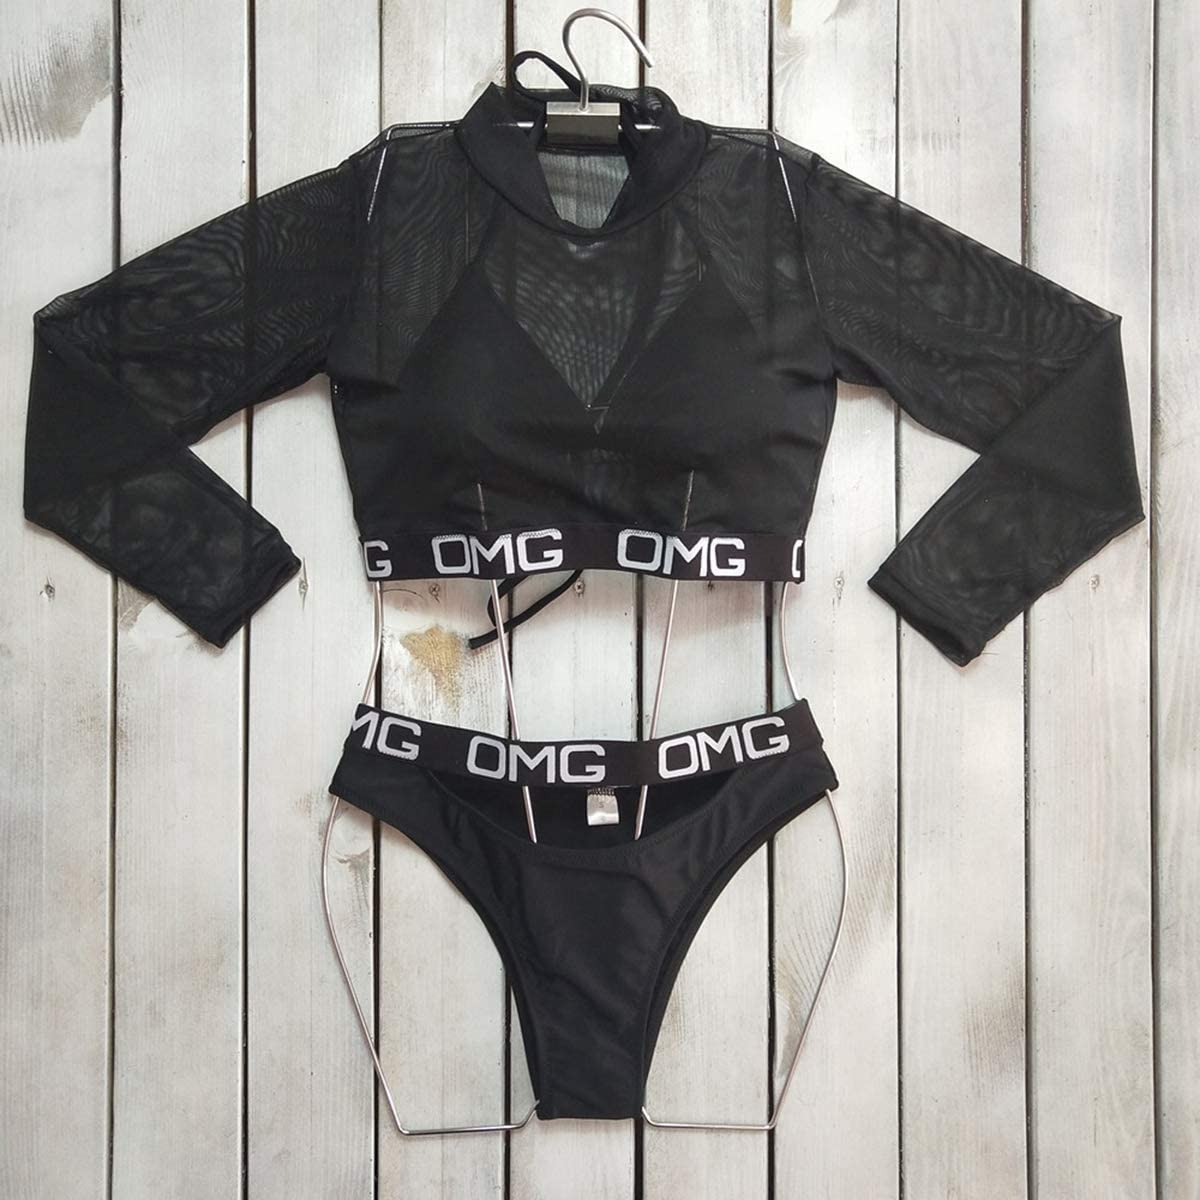 Women 3 Piece Swimsuit Bathing Suit High Waist Thong Bikini Sets with Mesh Cover Up